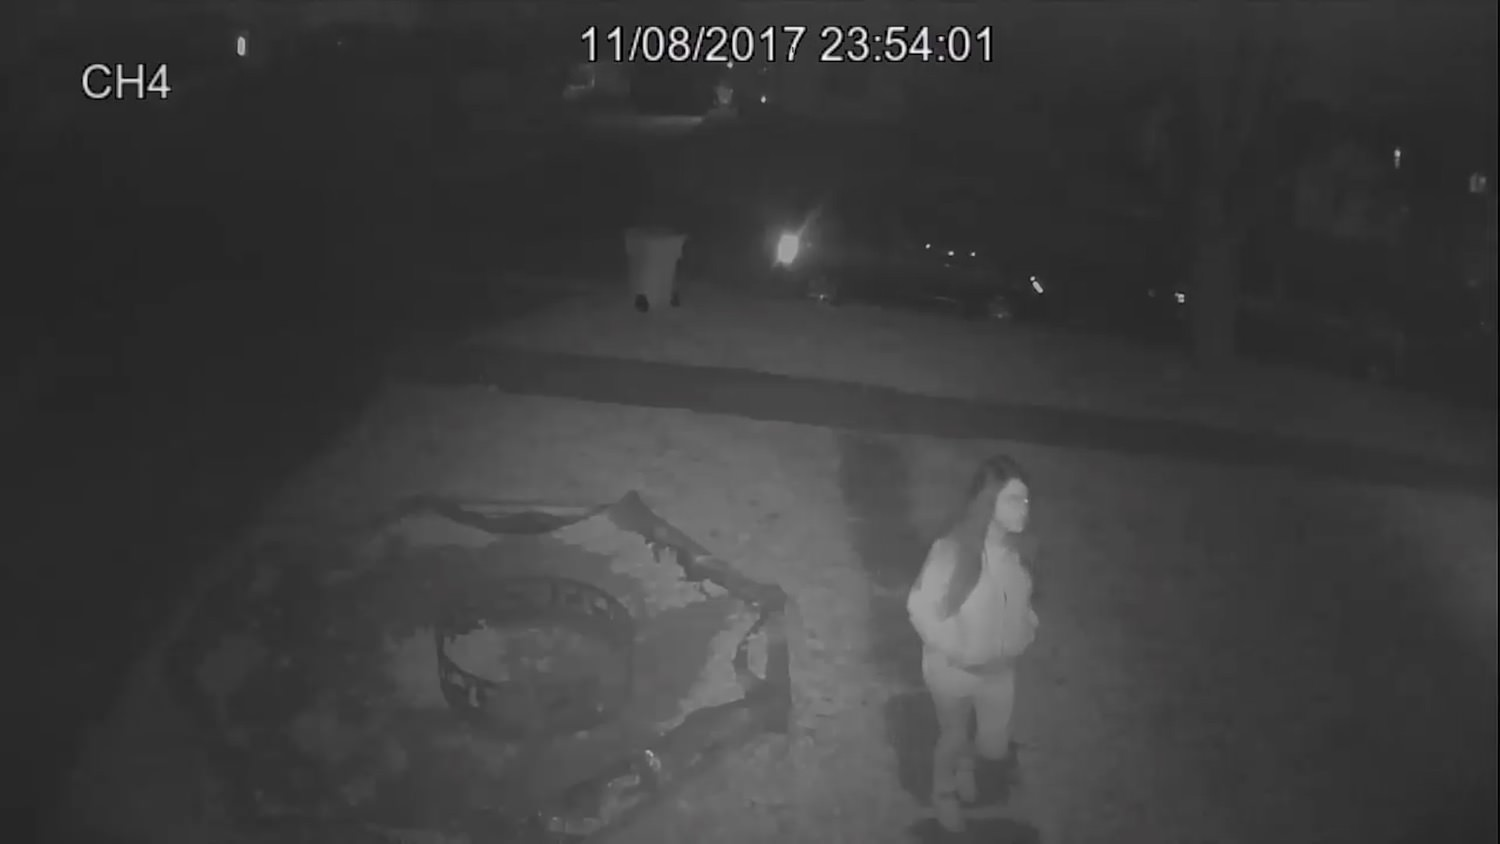 More Sioux City vehicle burglaries caught on camera 11th and Iowa